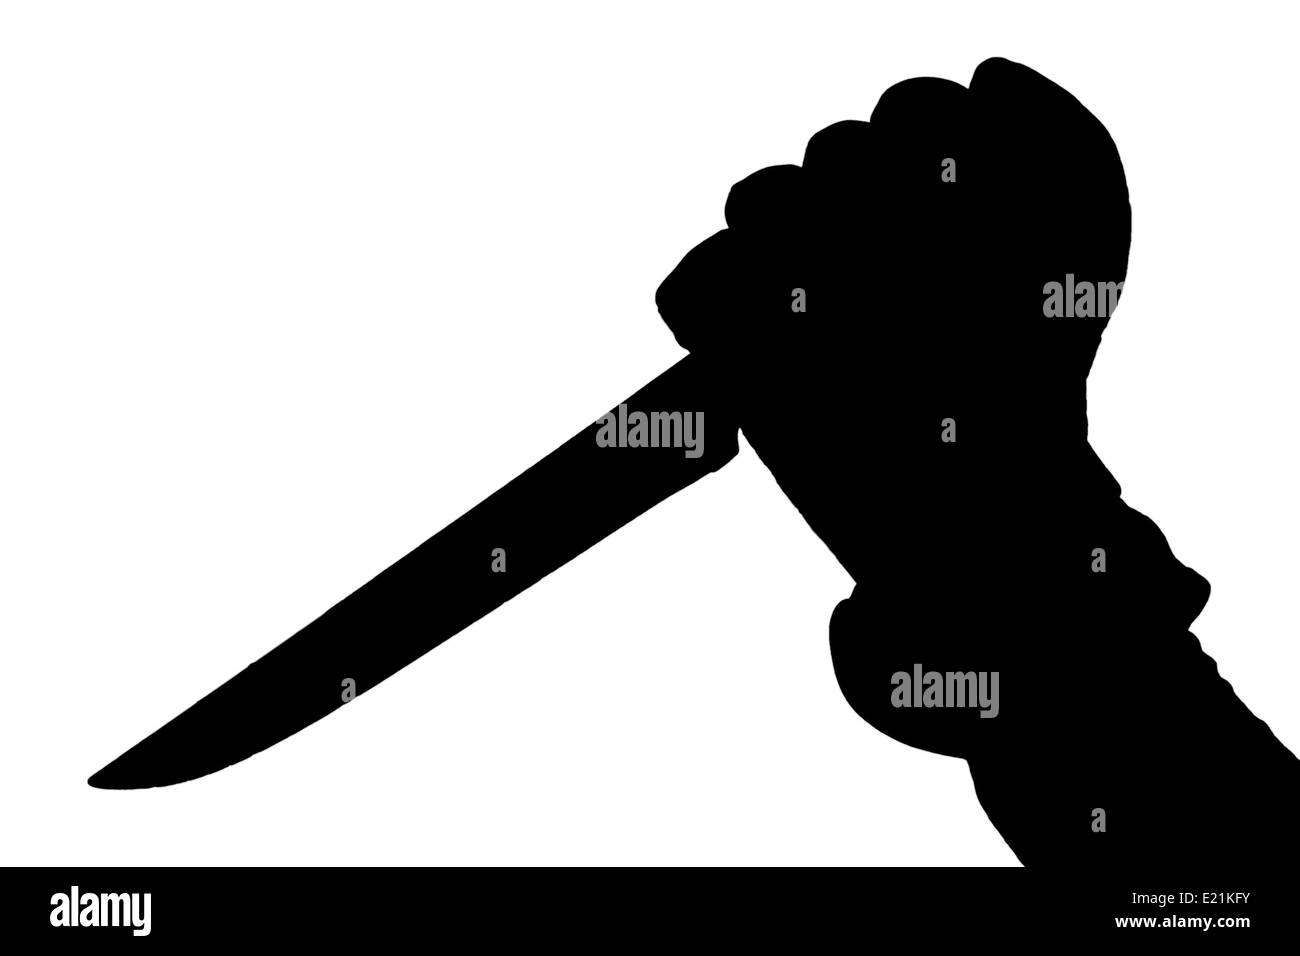 Silhouette of hand holding a knife - Stock Image